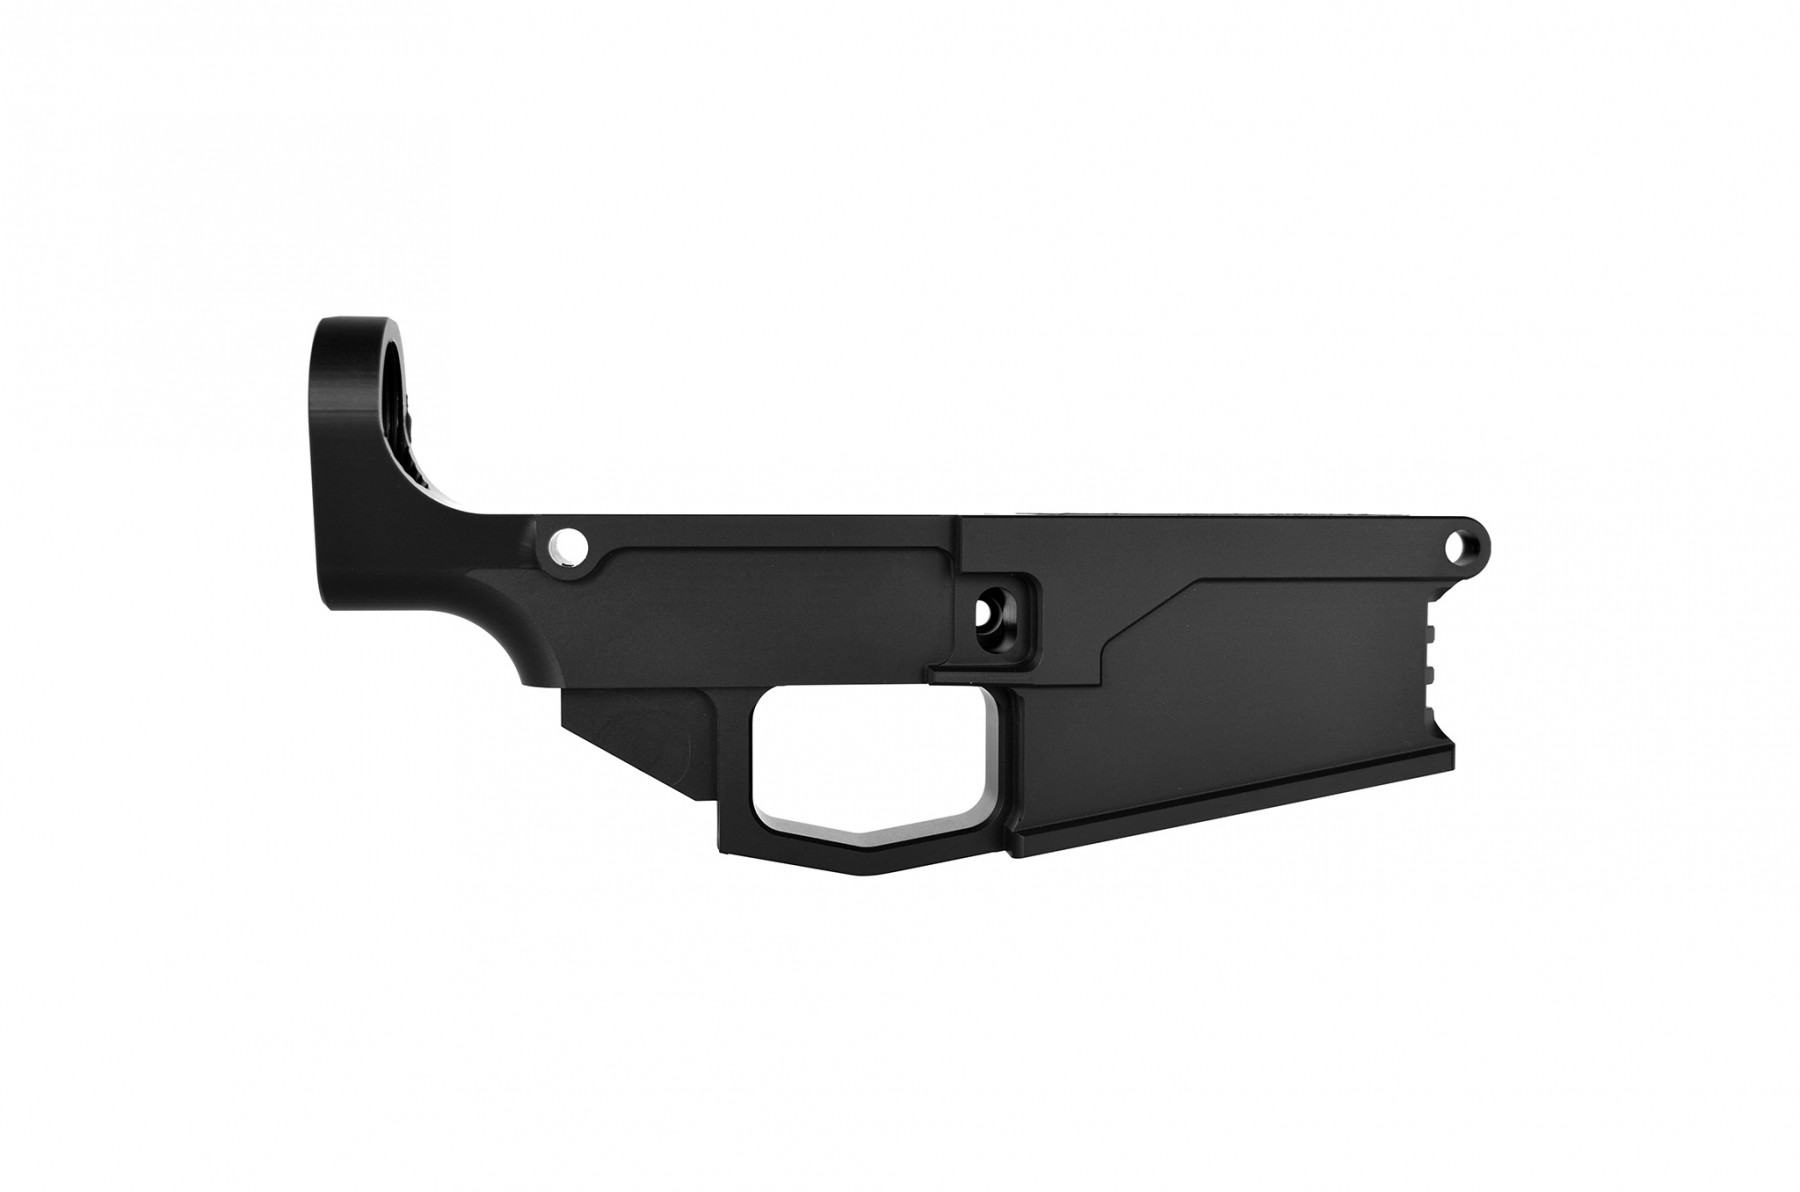 M1-80% AR10 Lower Receiver 5 Pack